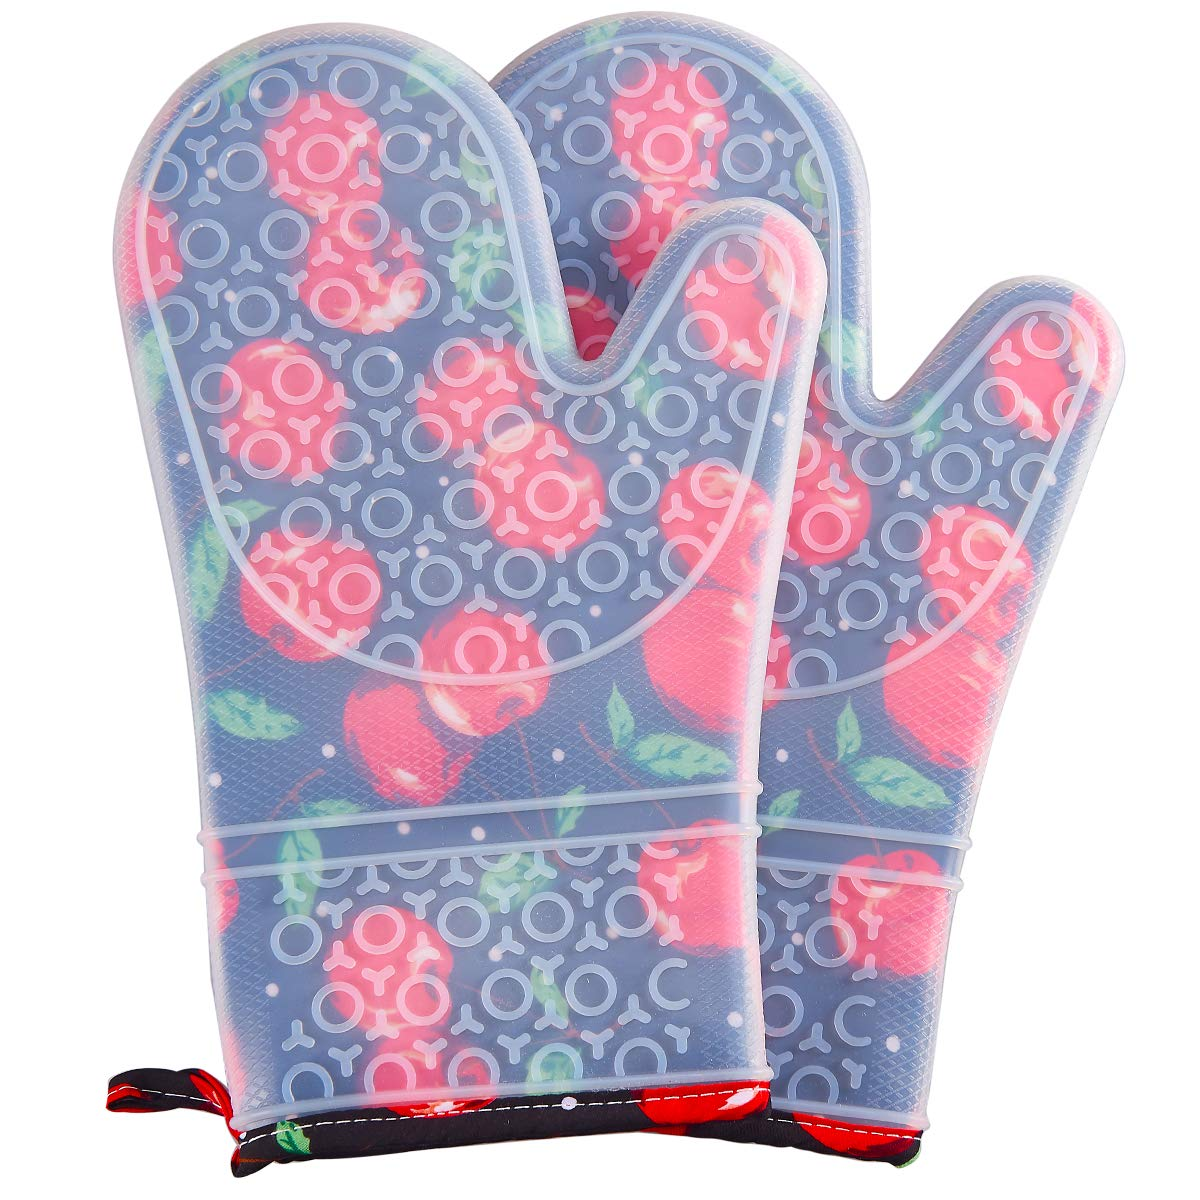 FAVIA Silicone Oven Mitts Heat Resistant to 480℉ Cooking Gloves for Grill BBQ Kitchen - Non-Slip & Waterproof BPA Free 1 Pair - Protective Cotton Lining (Medium, Black Base with Cherry)